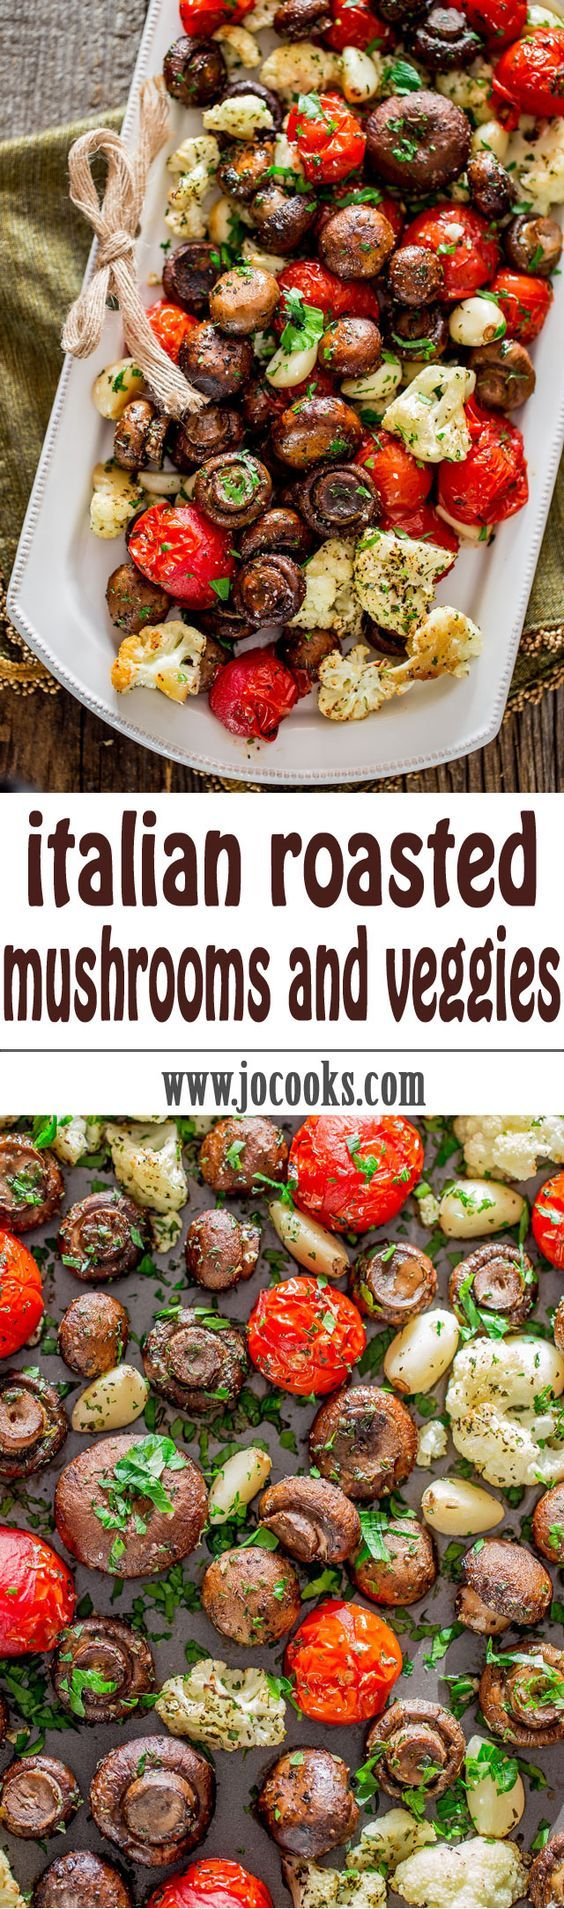 The easiest way to roast mushrooms, cauliflower, tomatoes and garlic Italian style. Simple and delicious.